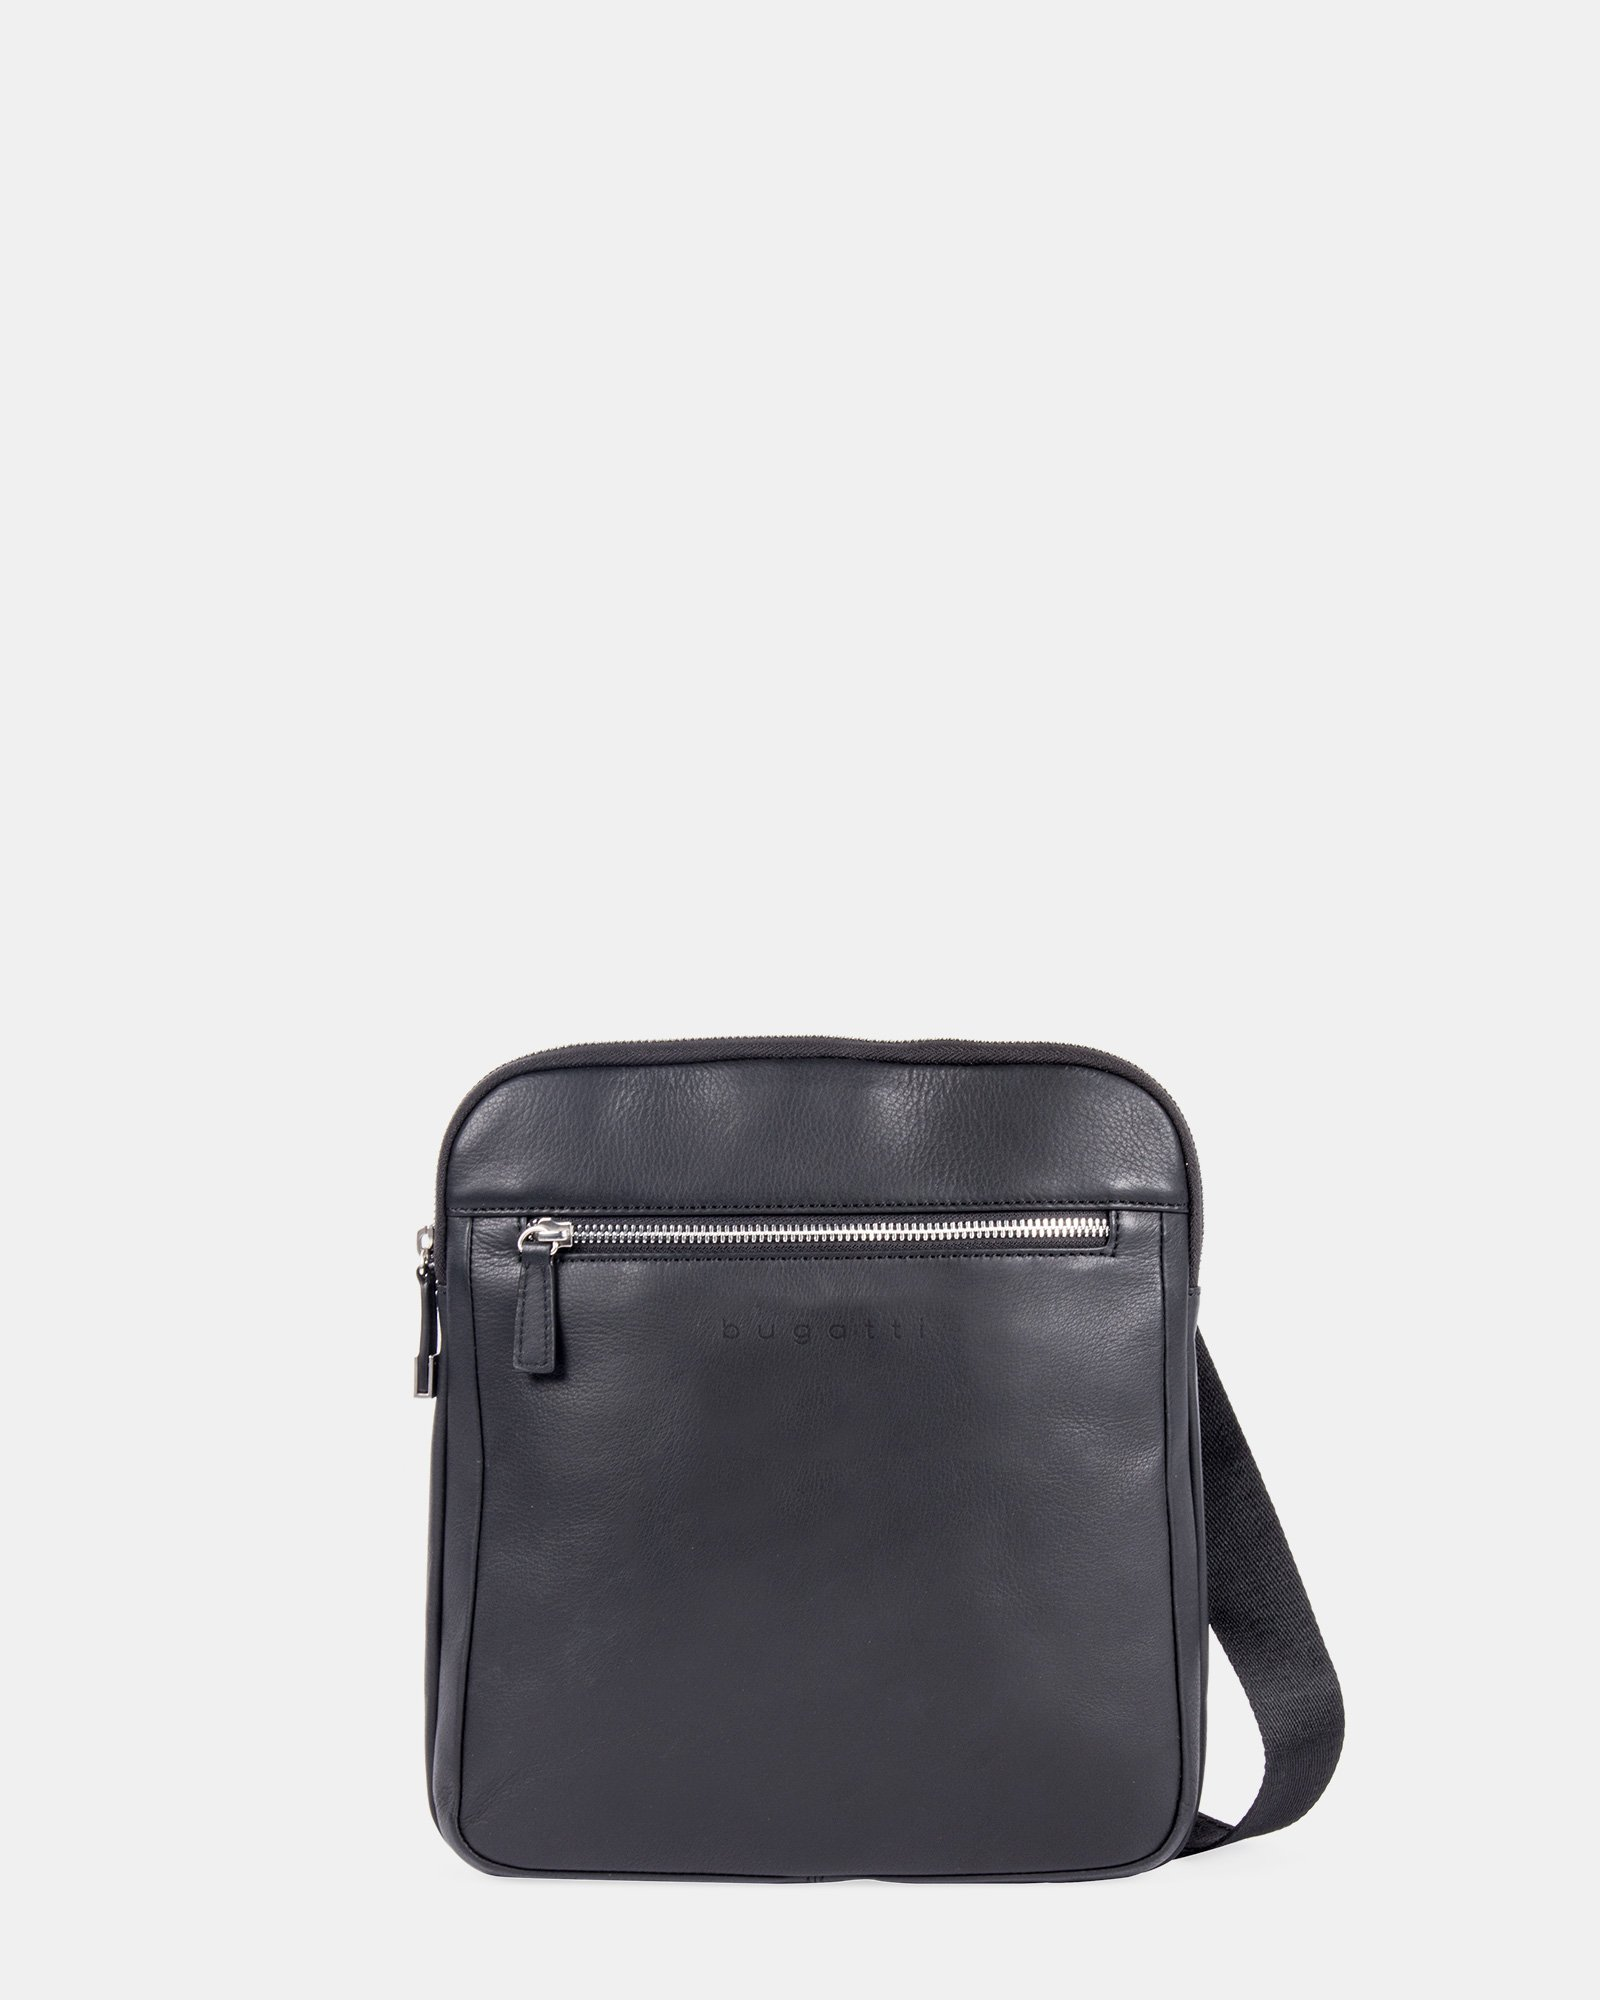 SARTORIA II - Leather crossbody bag with front zippered pocket - Black - Bugatti - Zoom